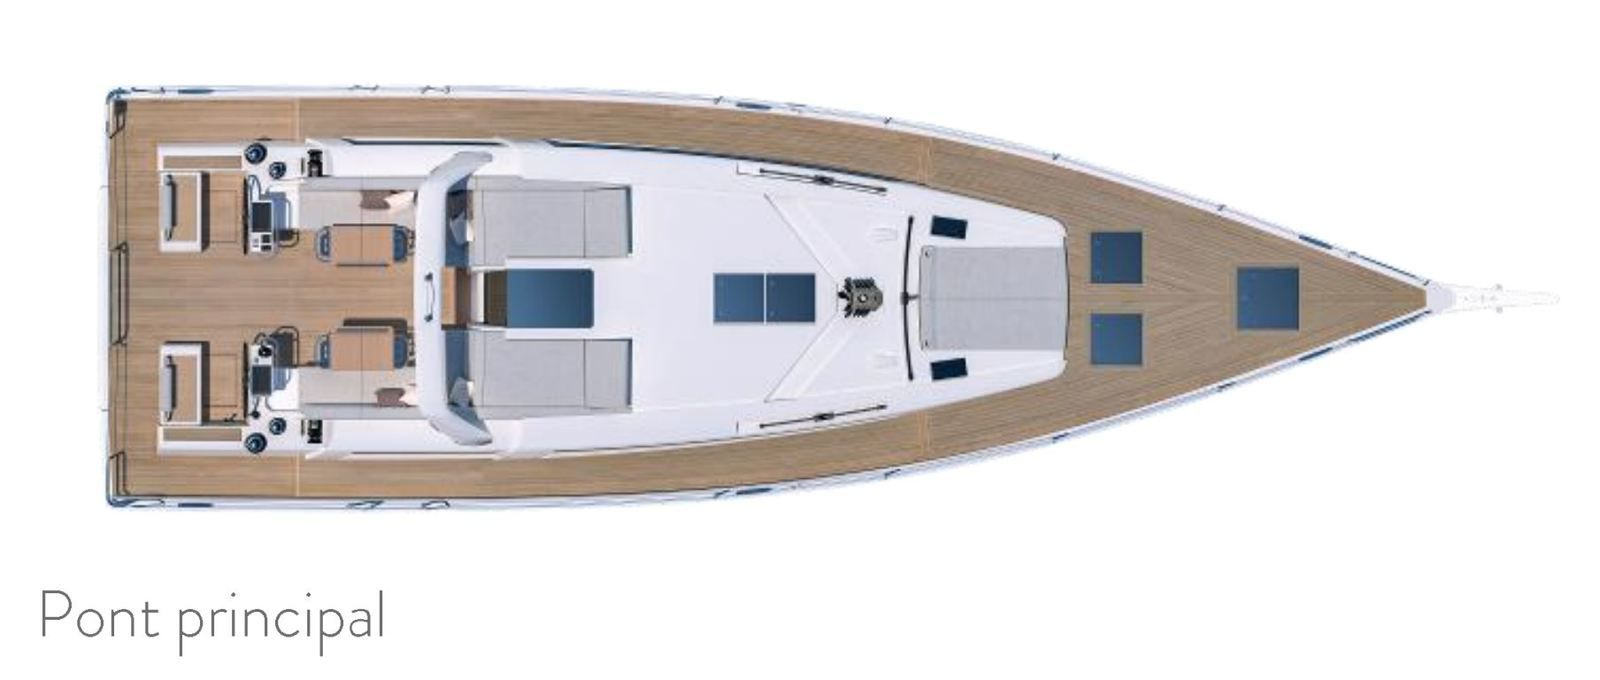 Bénéteau announces the arrival of the Océanis Yacht 54, with a revolutionary deck layout